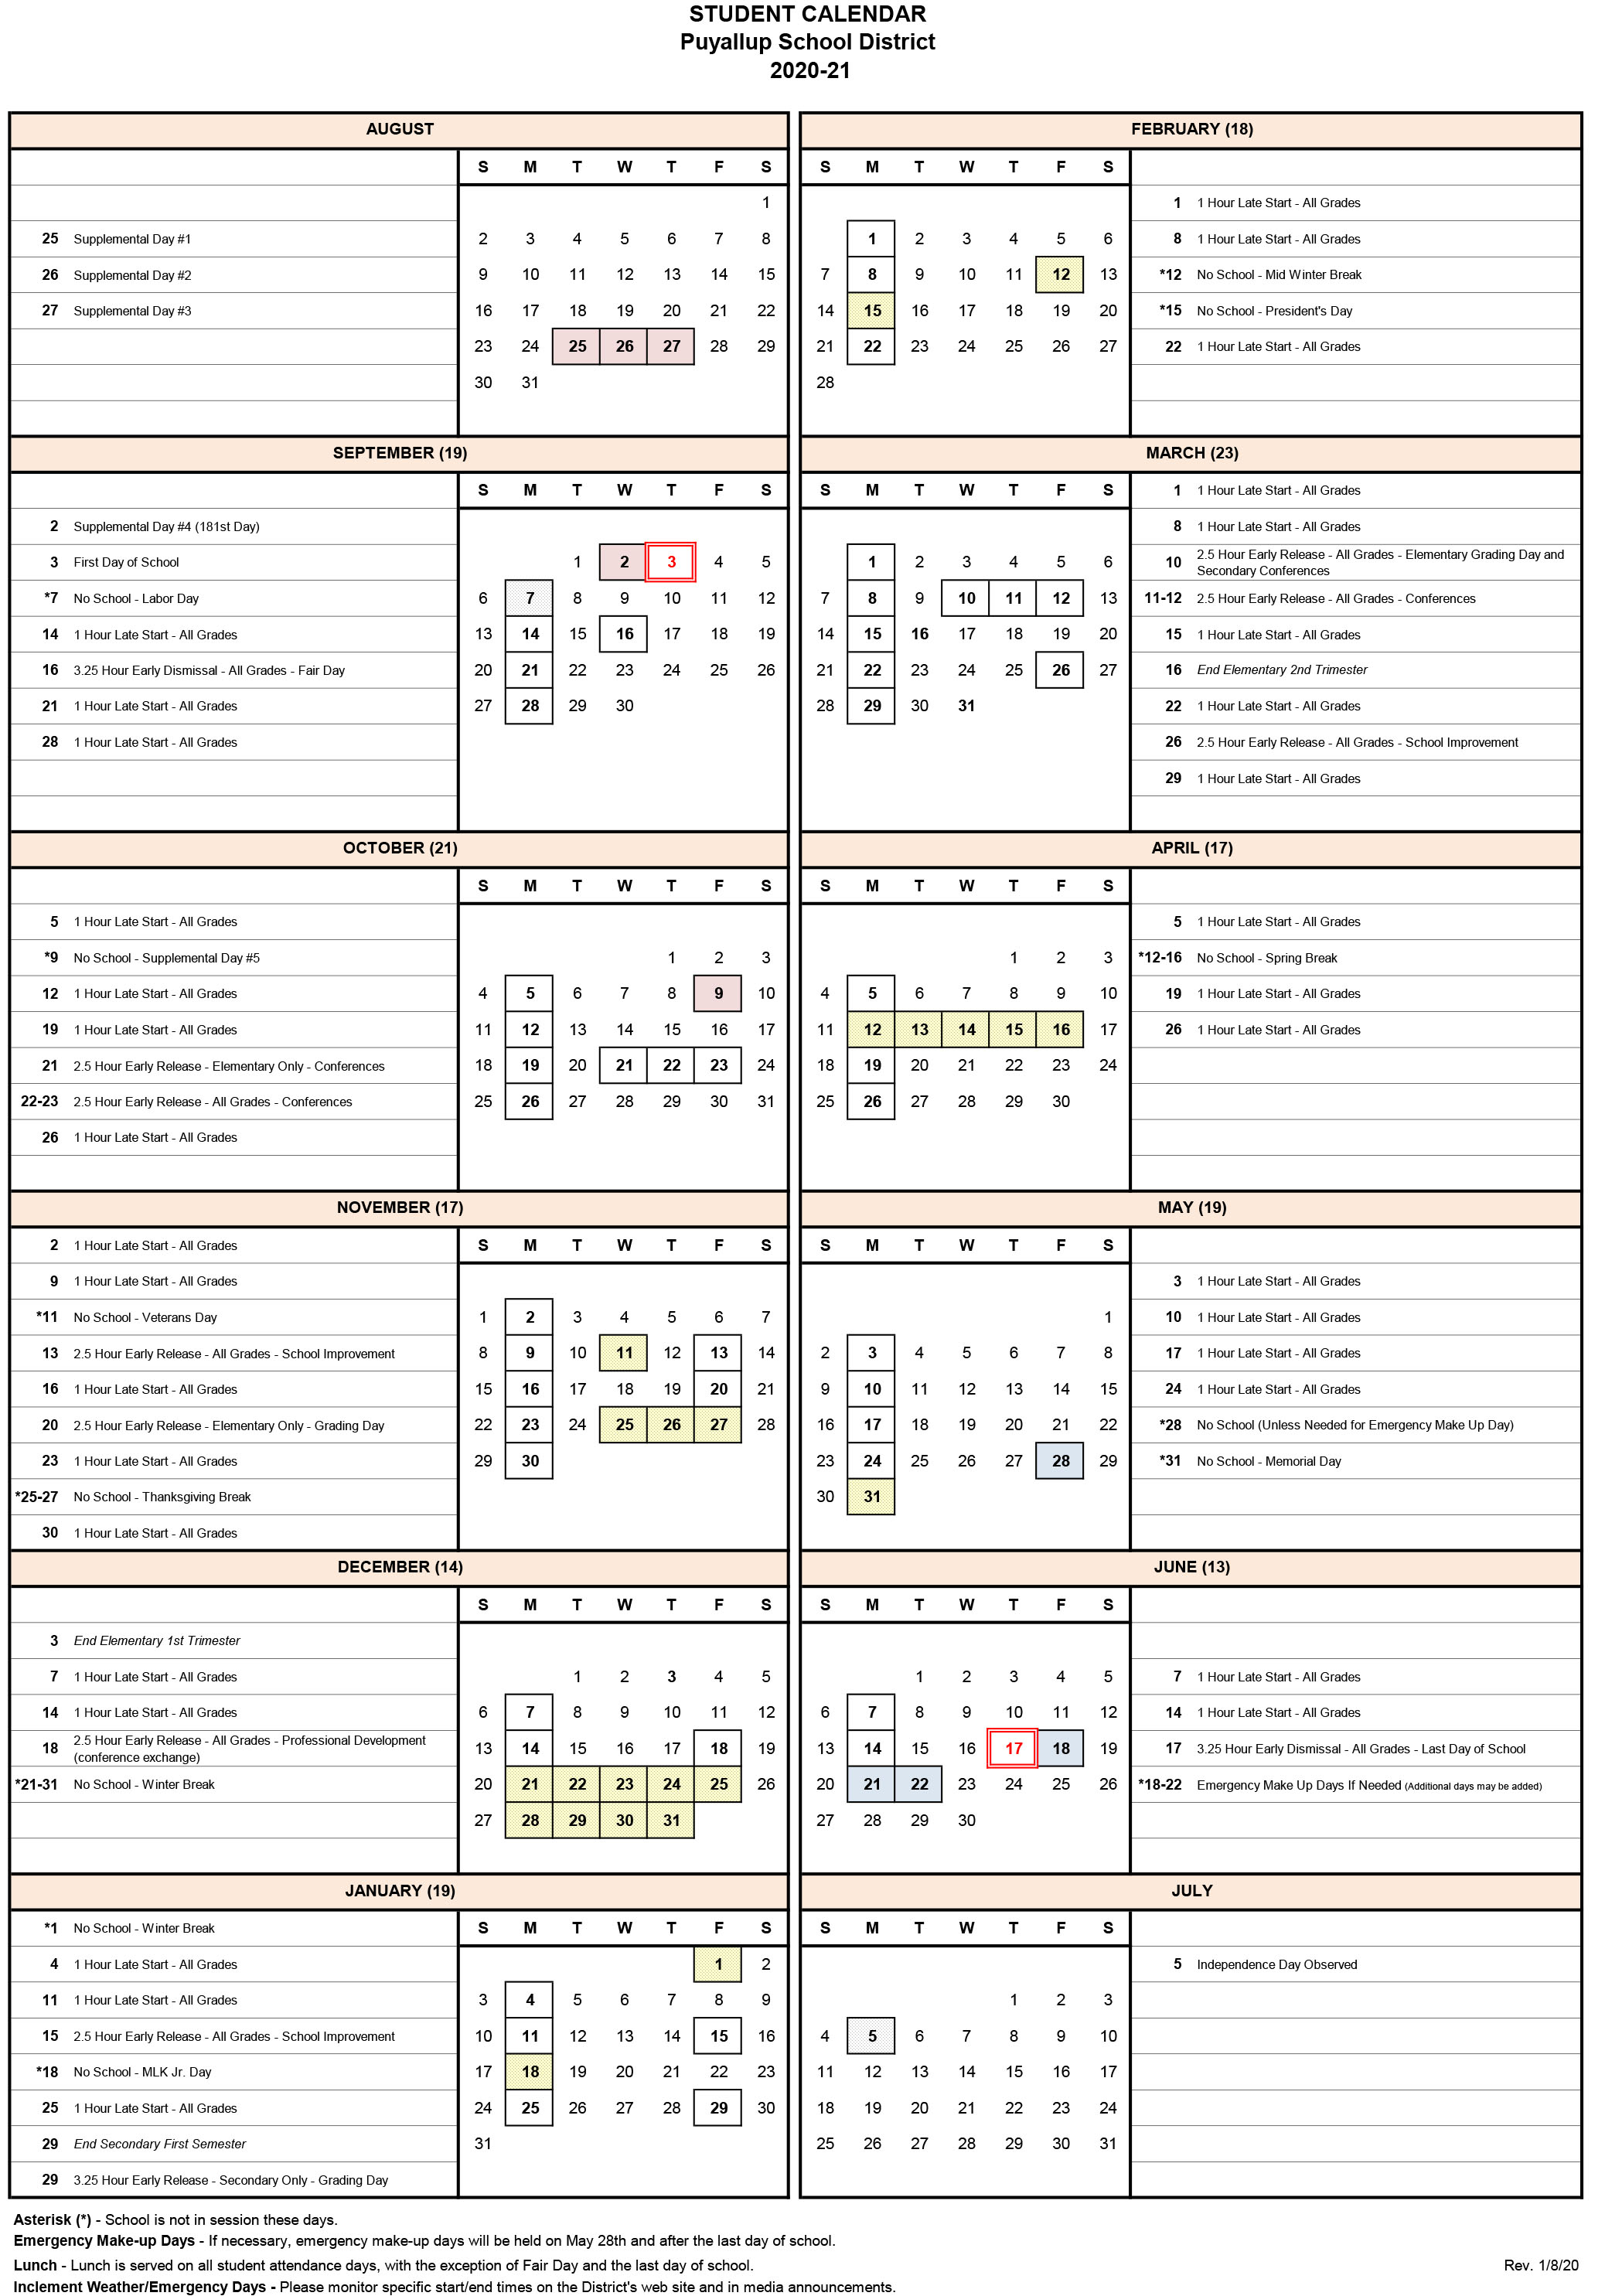 2020 2021 Student Calendar Approved - Puyallup School District With Post Falls High School Calendar